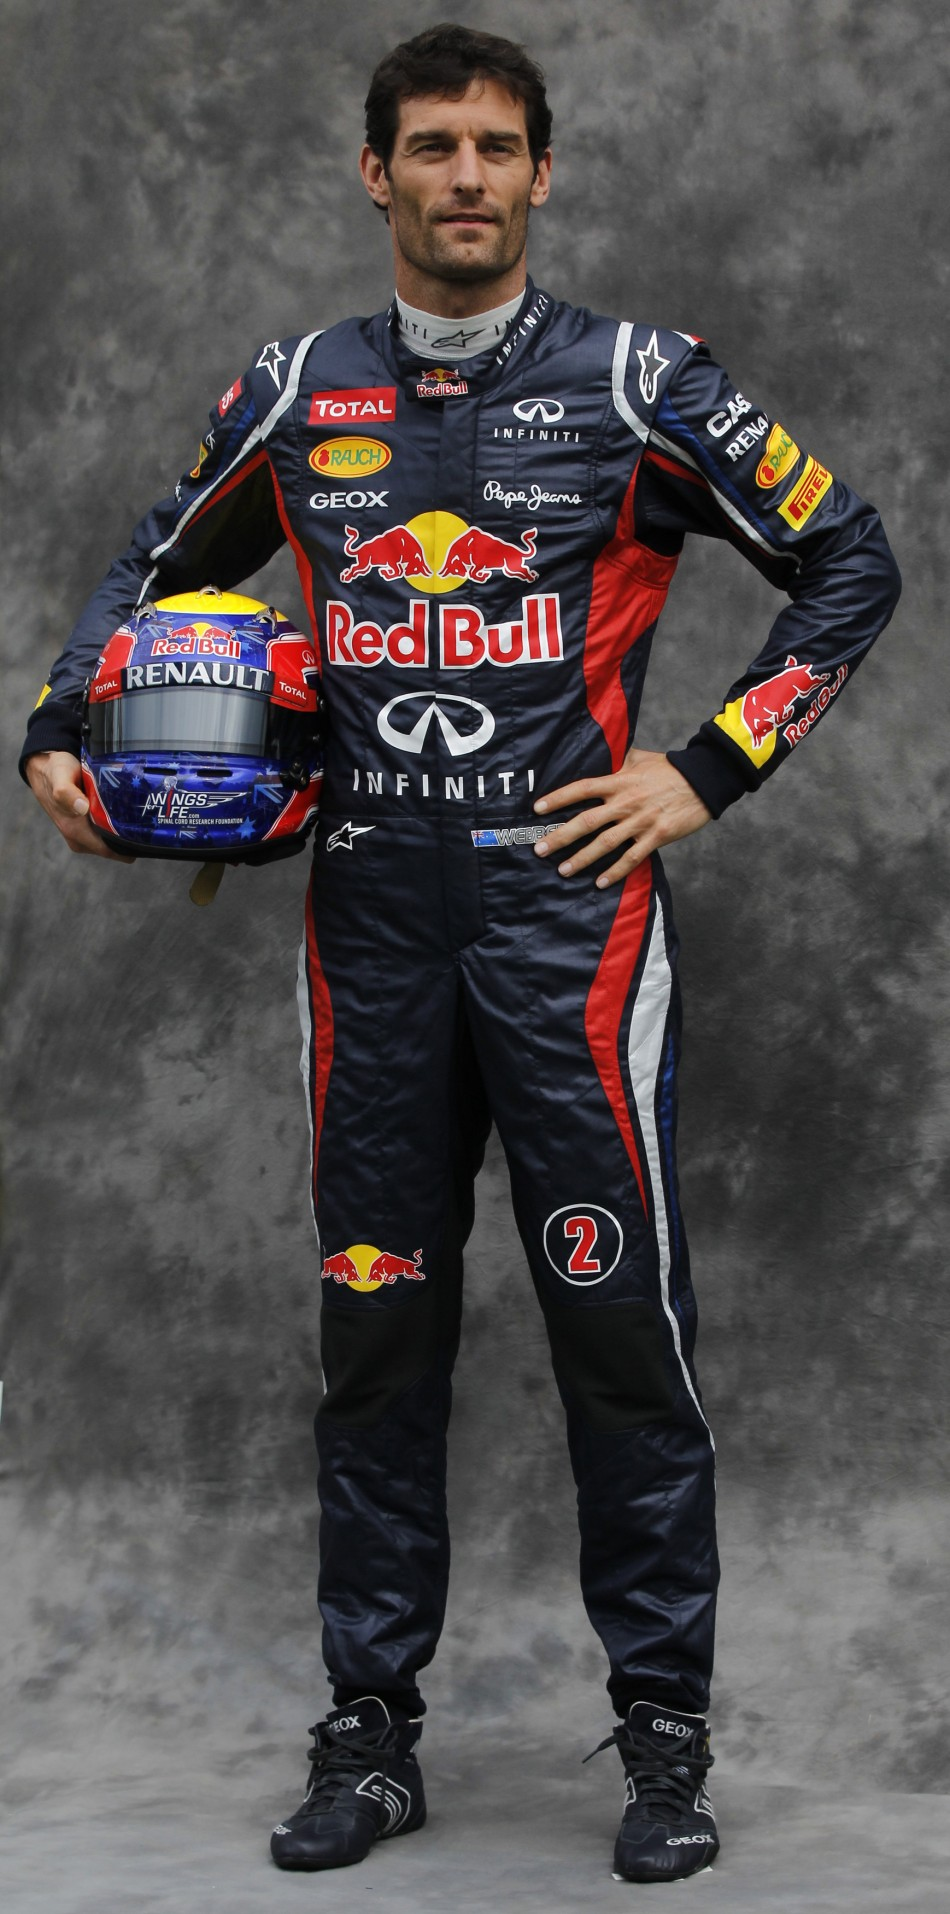 Red Bull Formula One driver Webber poses prior to the Australian F1 Grand Prix at the Albert Park circuit in Melbourne